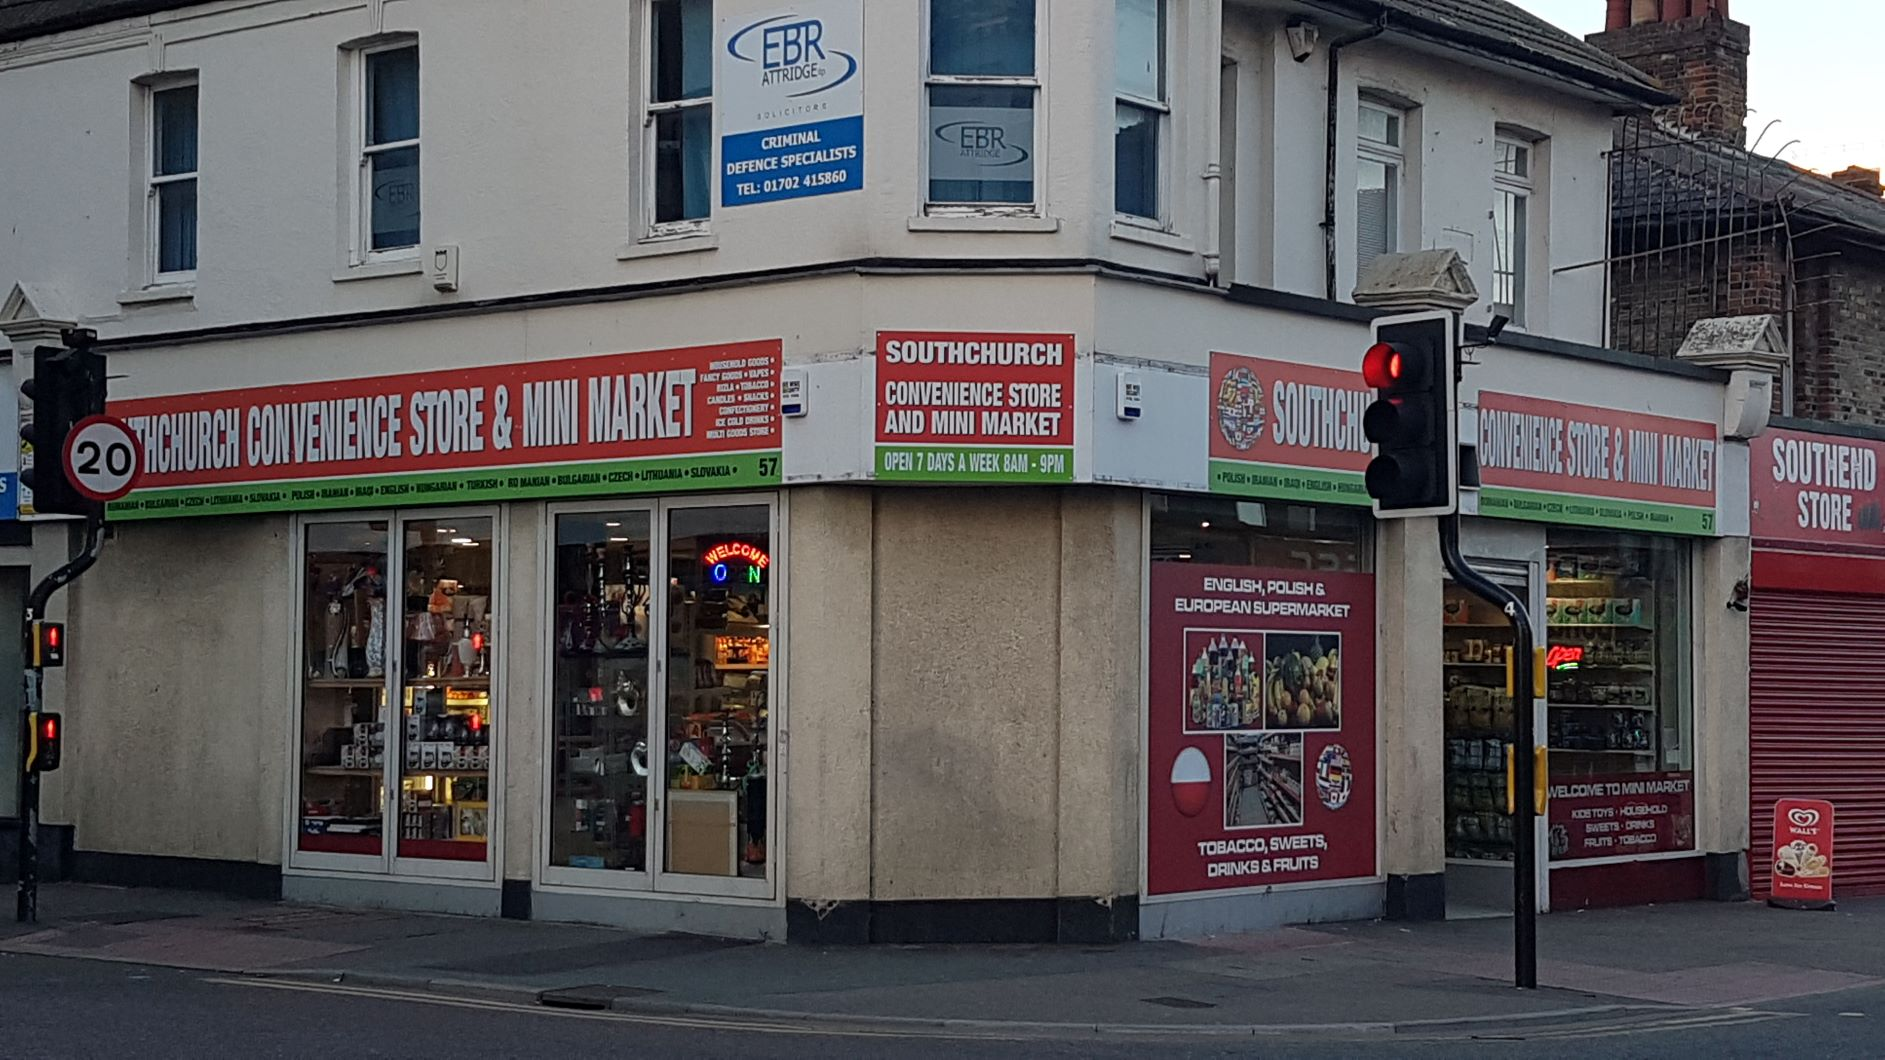 Southend Store sign